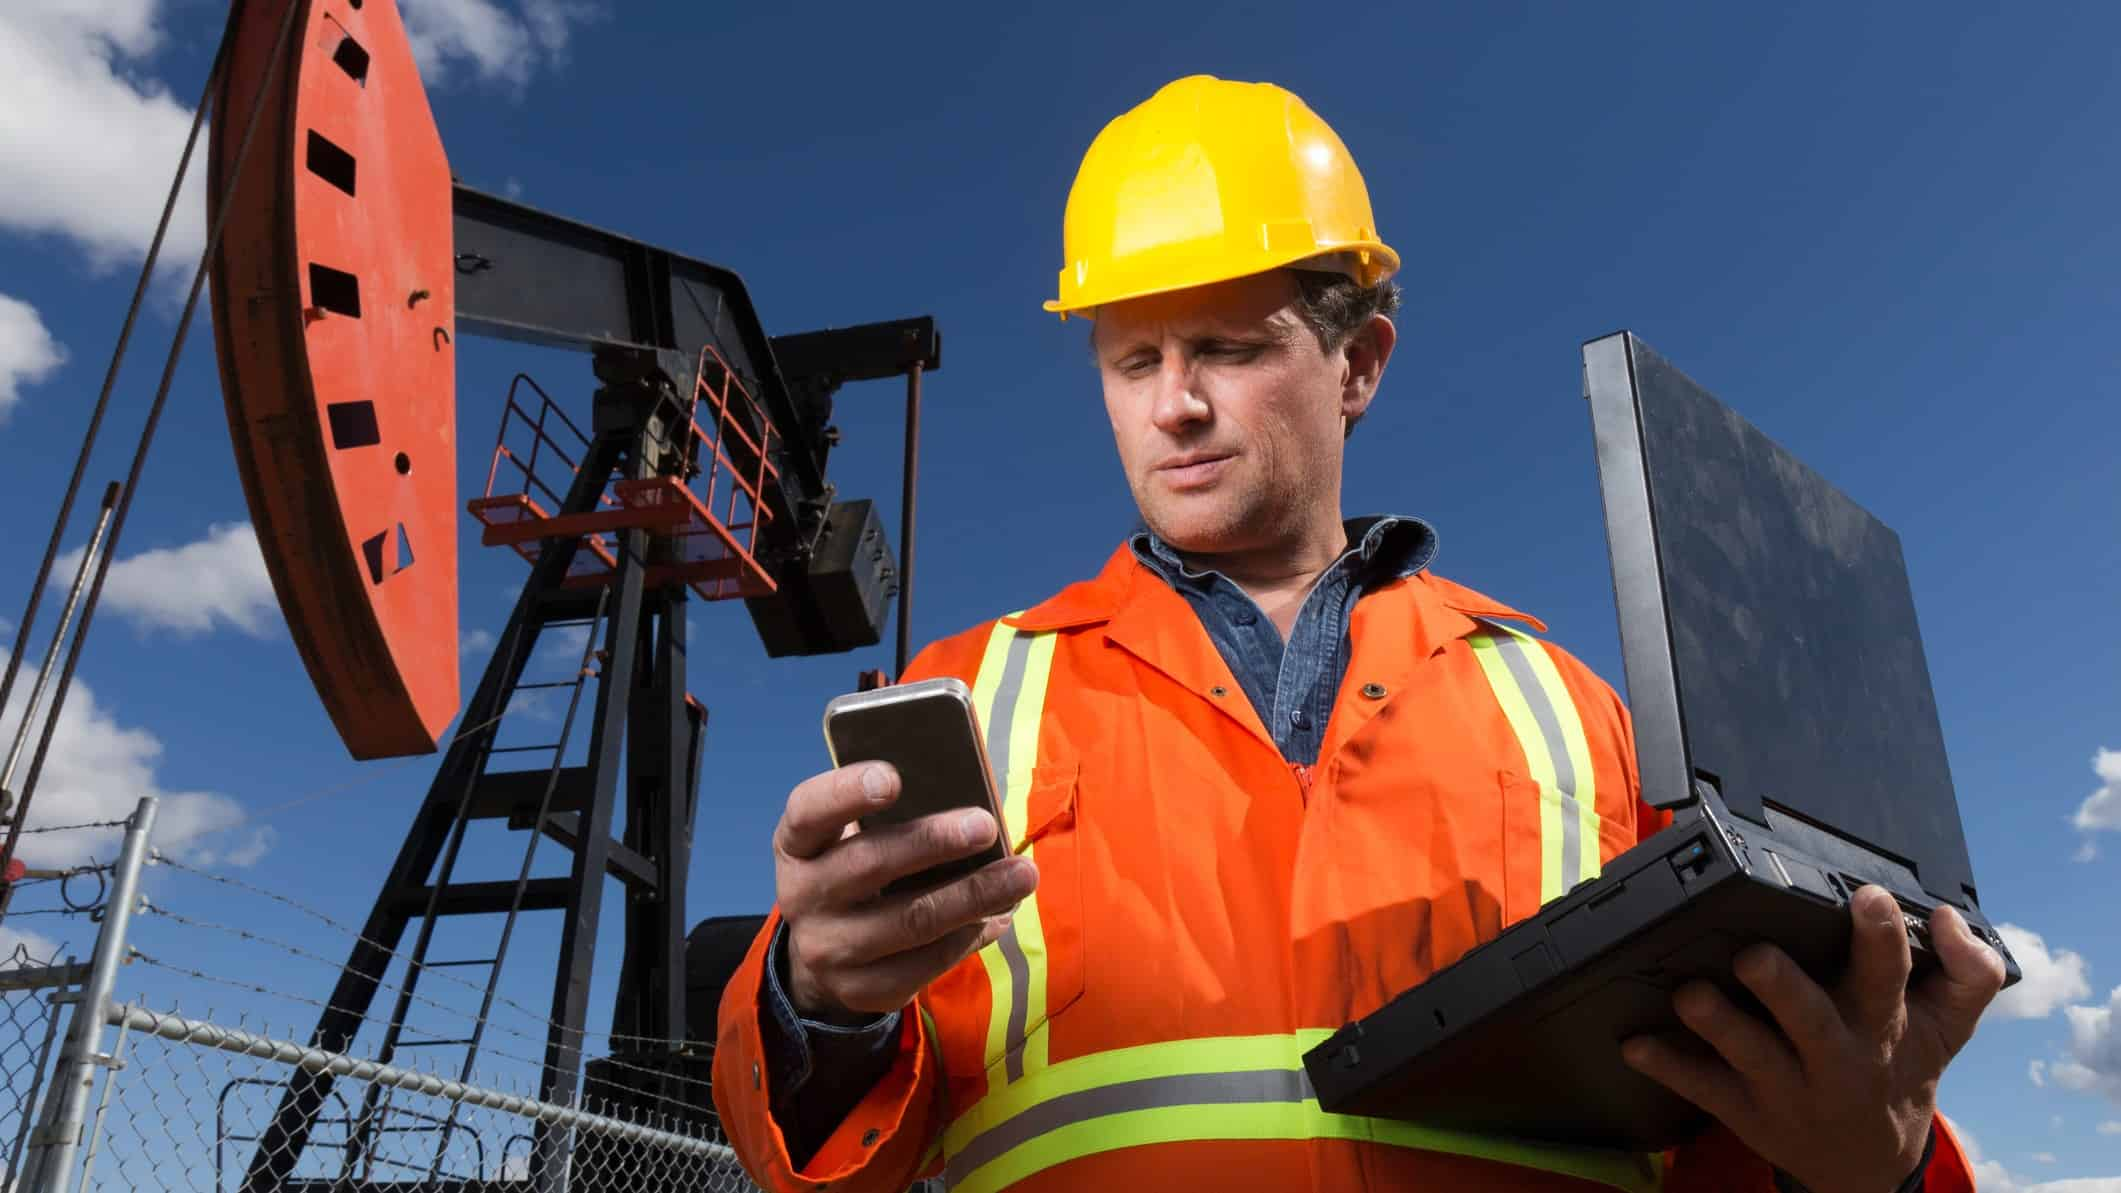 Oil miner with laptop and phone at mine site